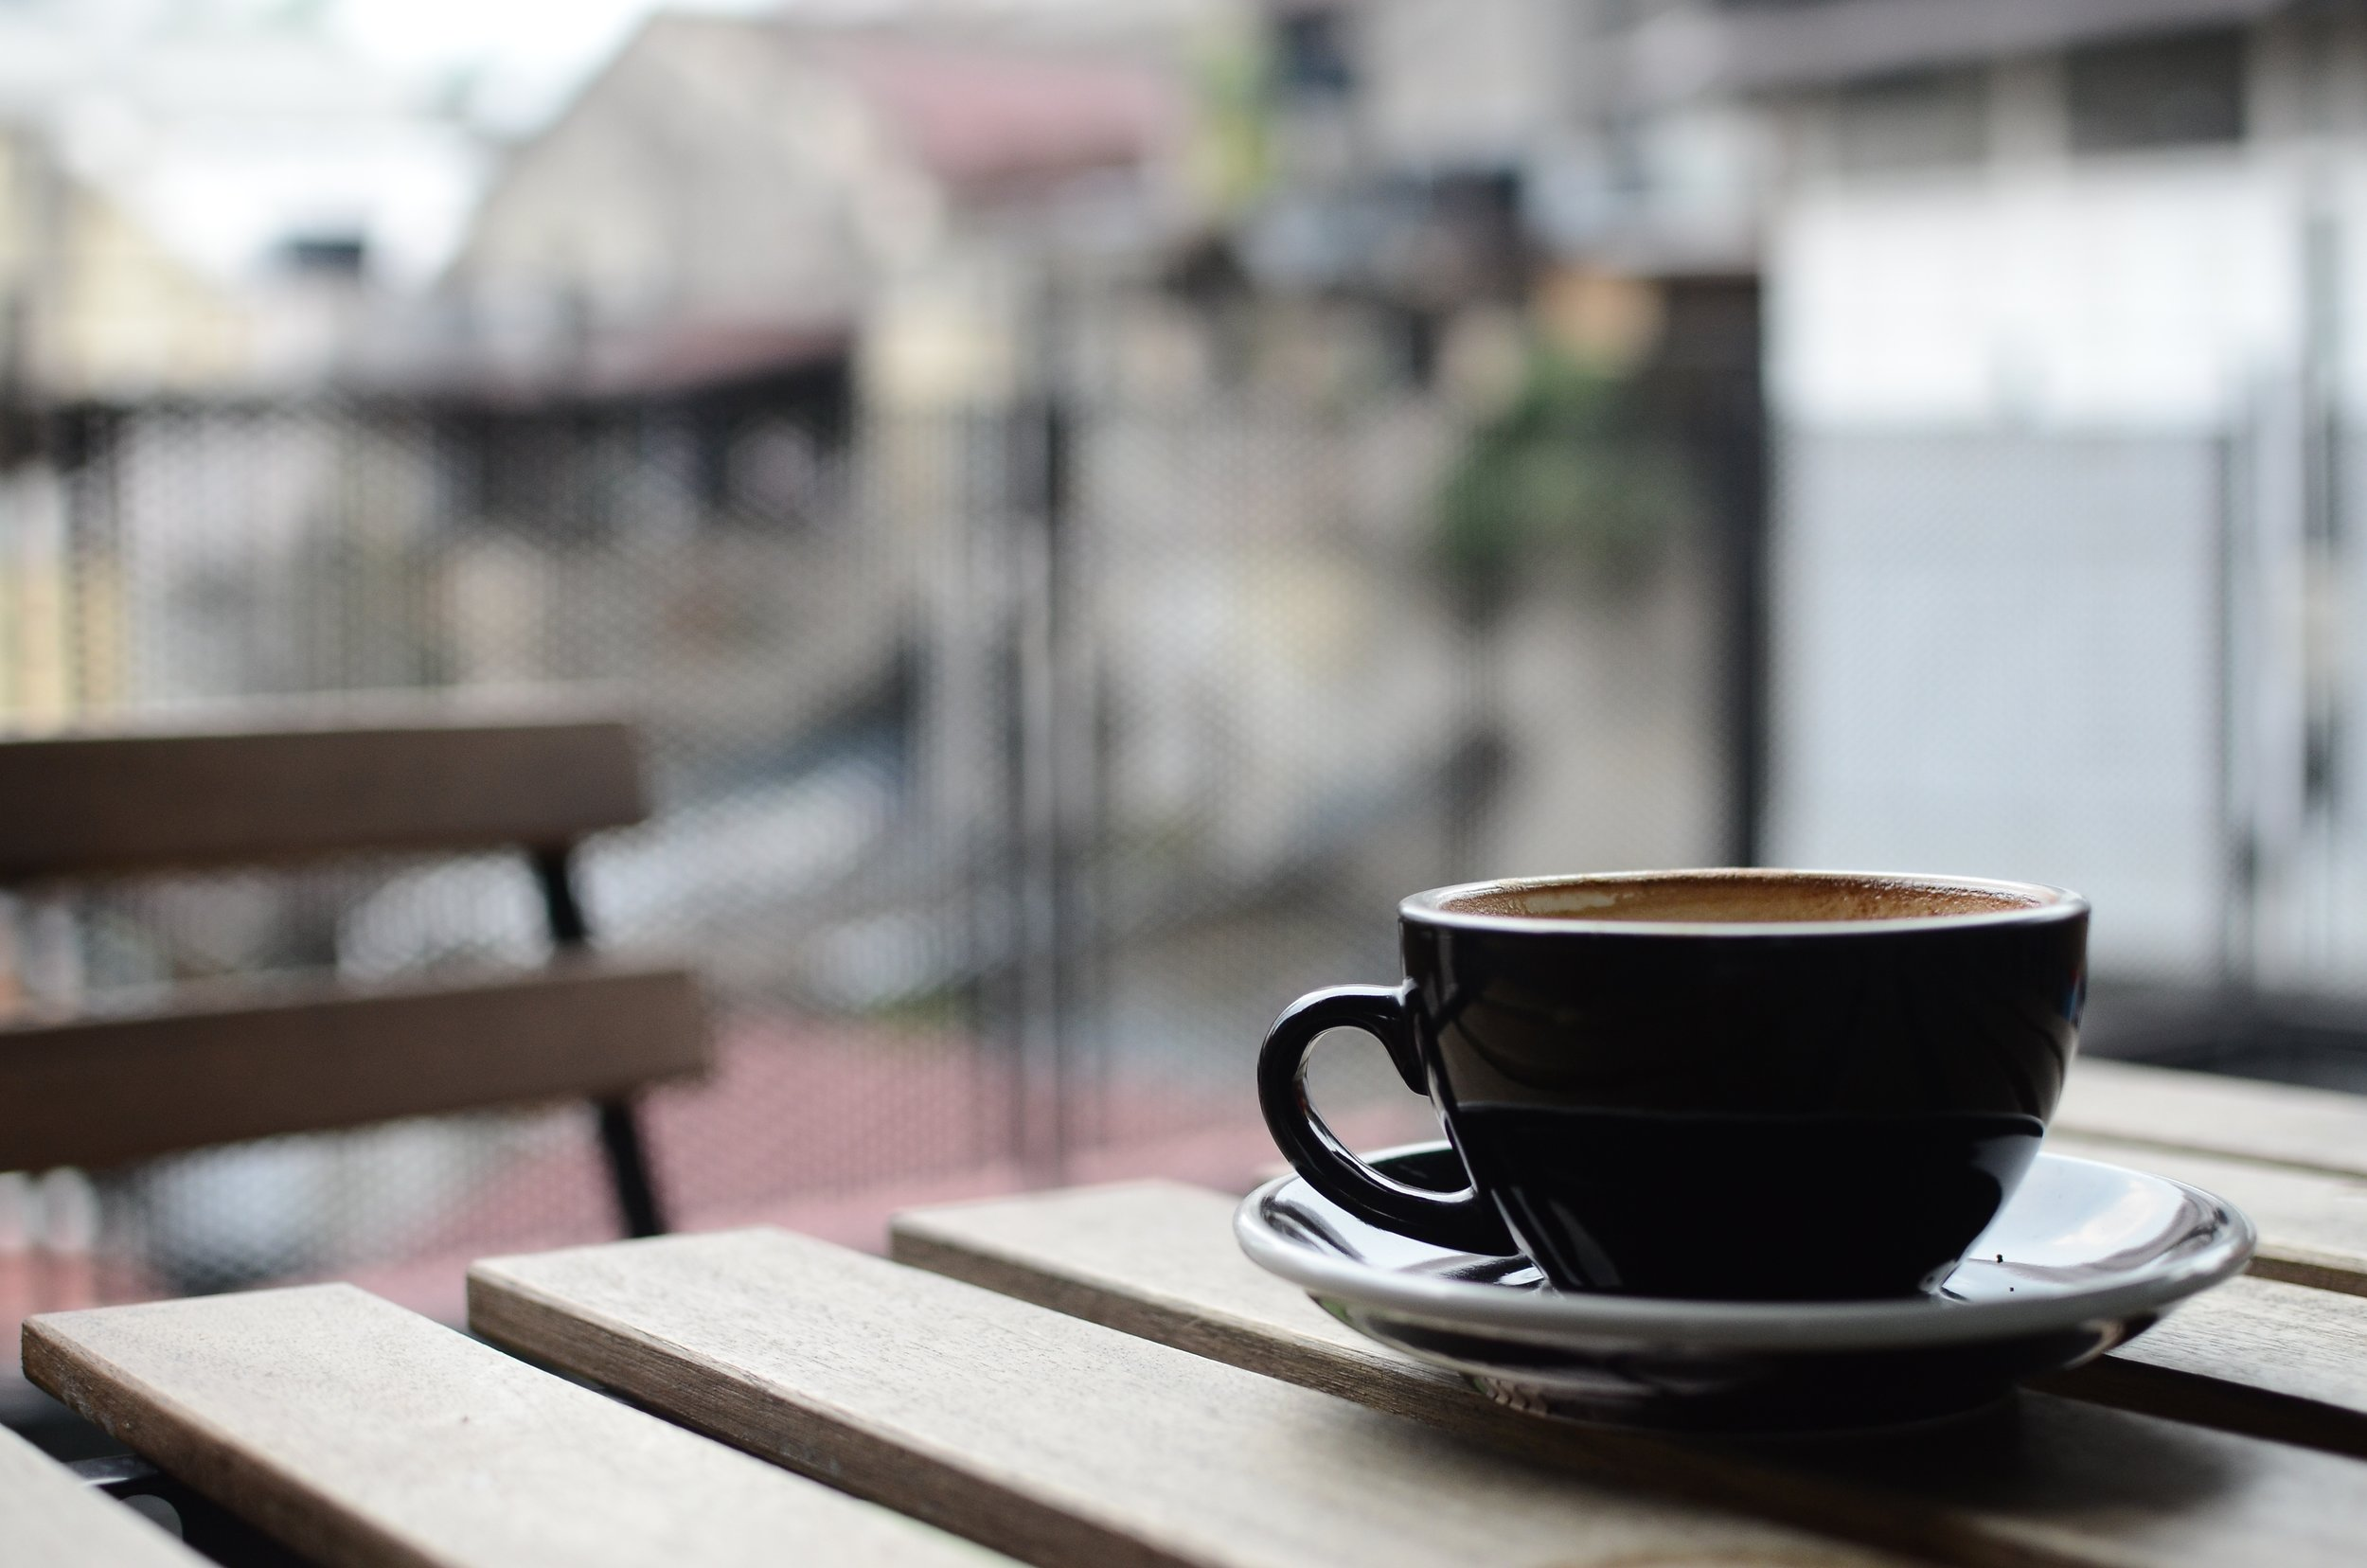 coffee out of focus.jpg